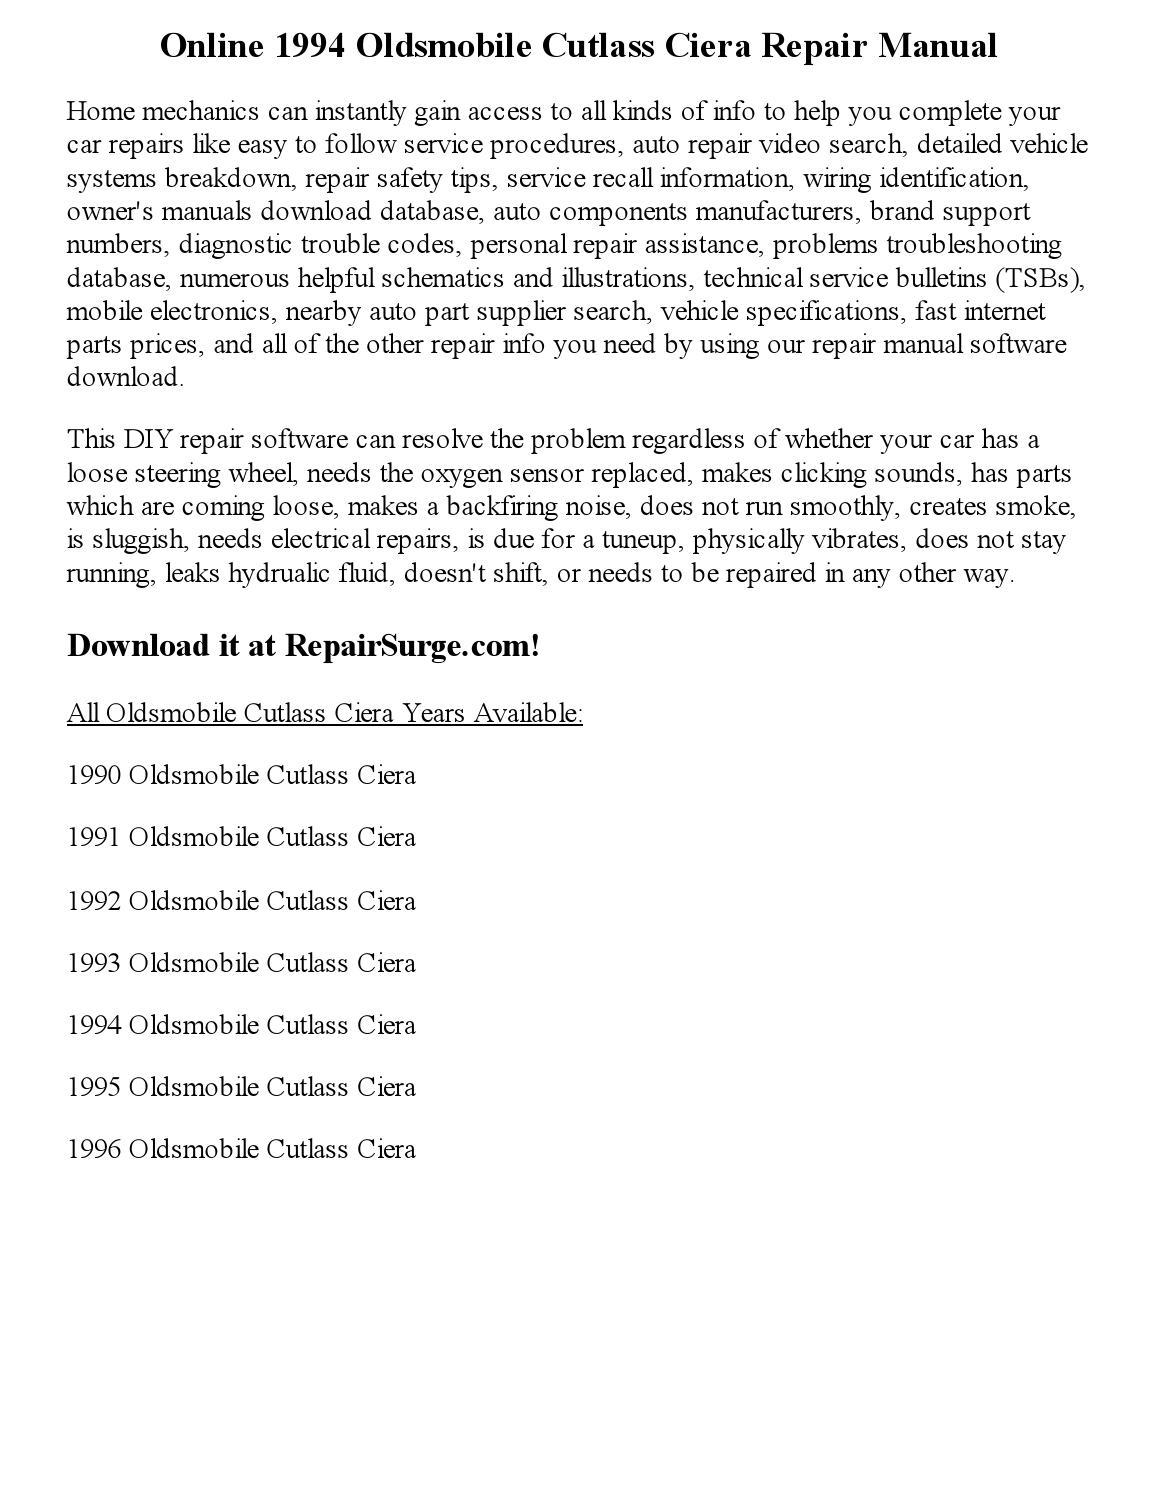 1994 oldsmobile cutlass ciera repair manual online by Clark Andrew - issuu